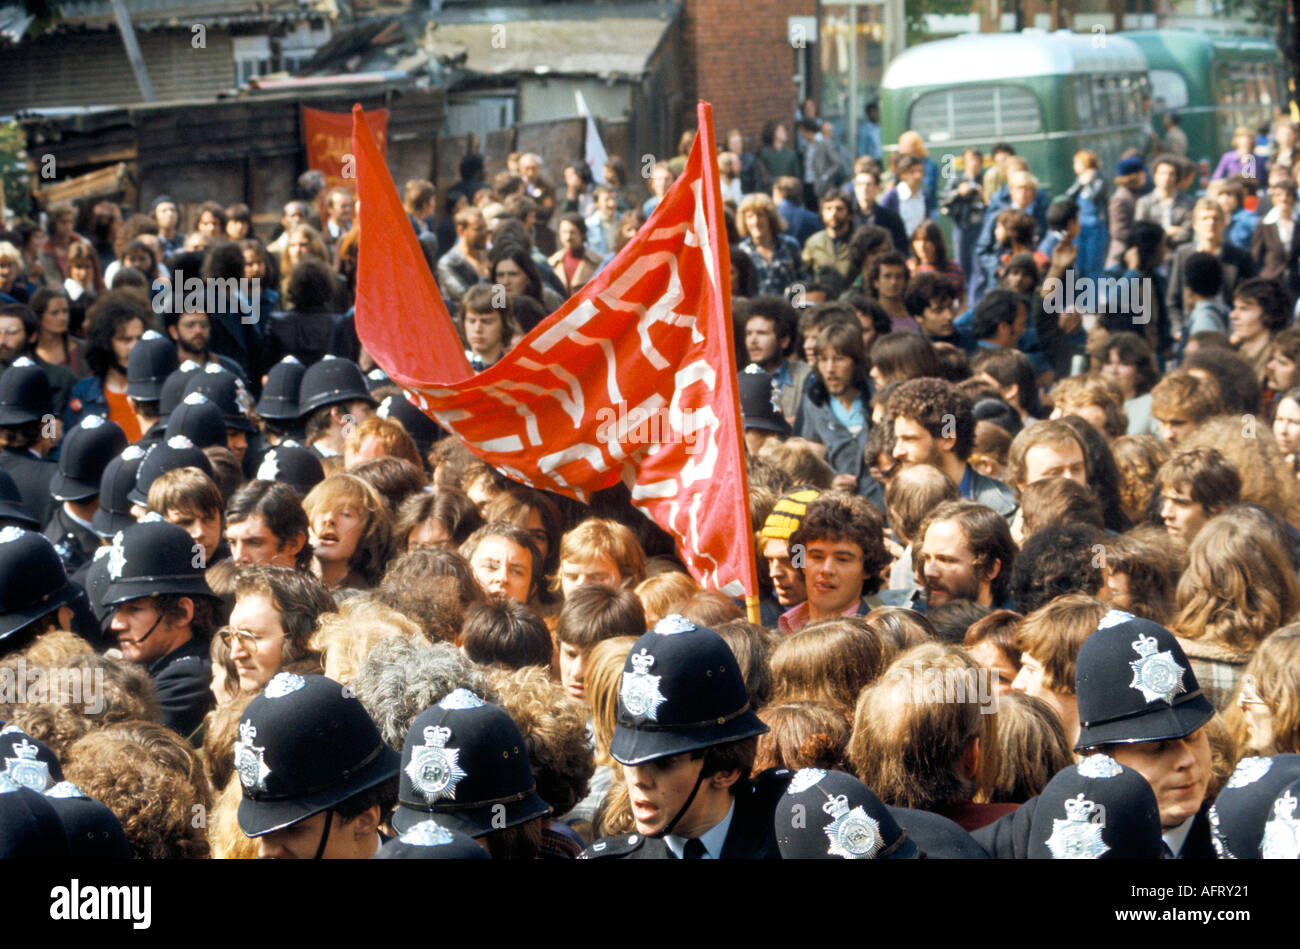 Grunwick industrial dispute and protest. Asian women film processing factory strike North london 1970s 1977 - Stock Image